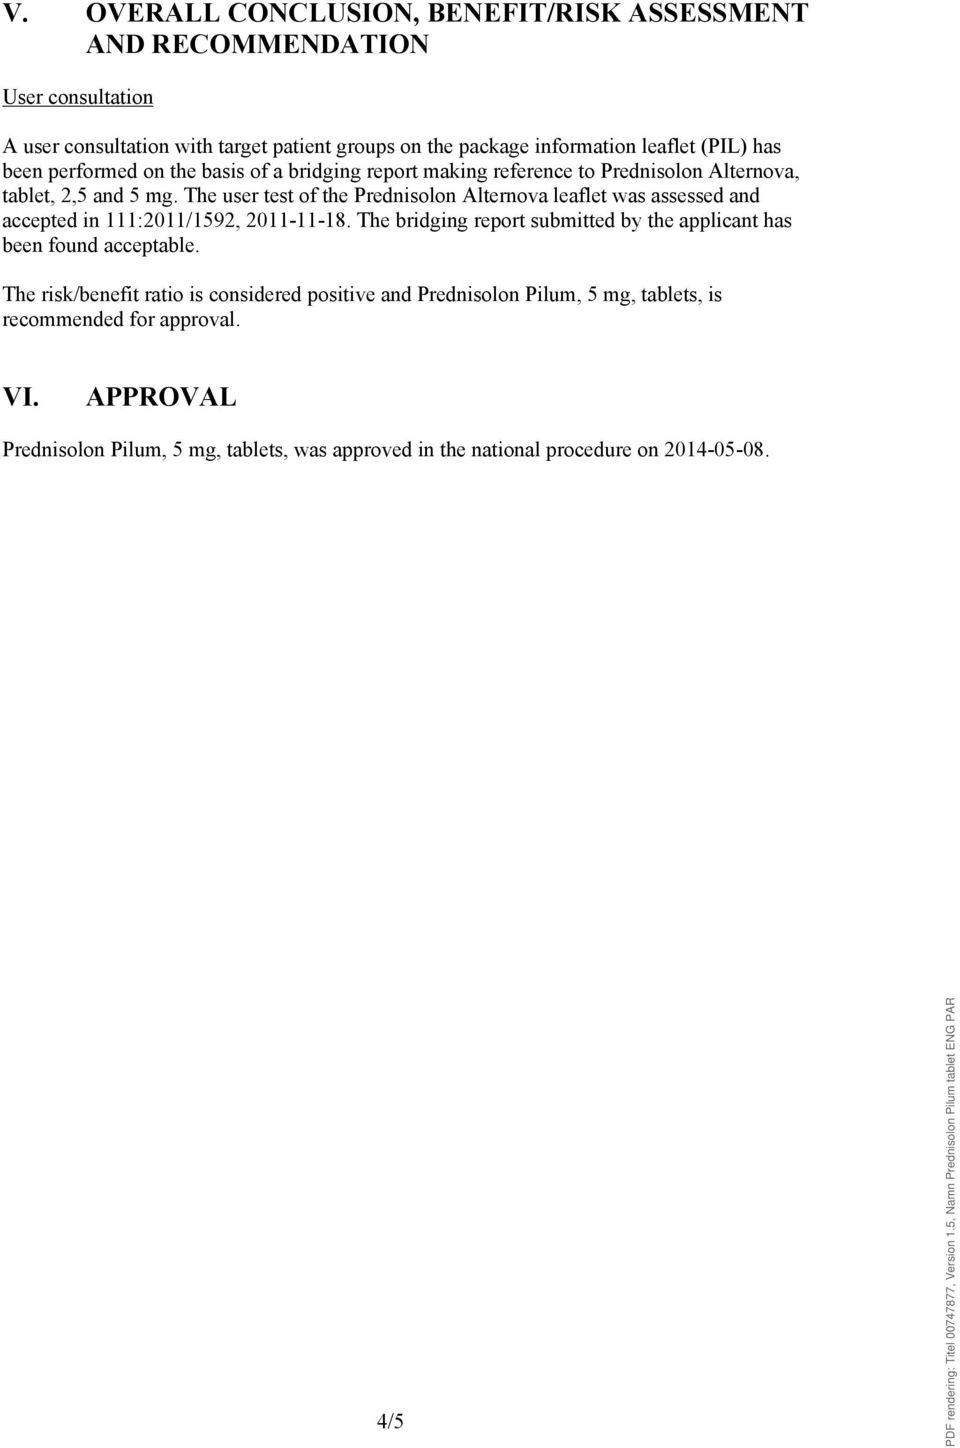 The user test of the Prednisolon Alternova leaflet was assessed and accepted in 111:2011/1592, 2011-11-18.